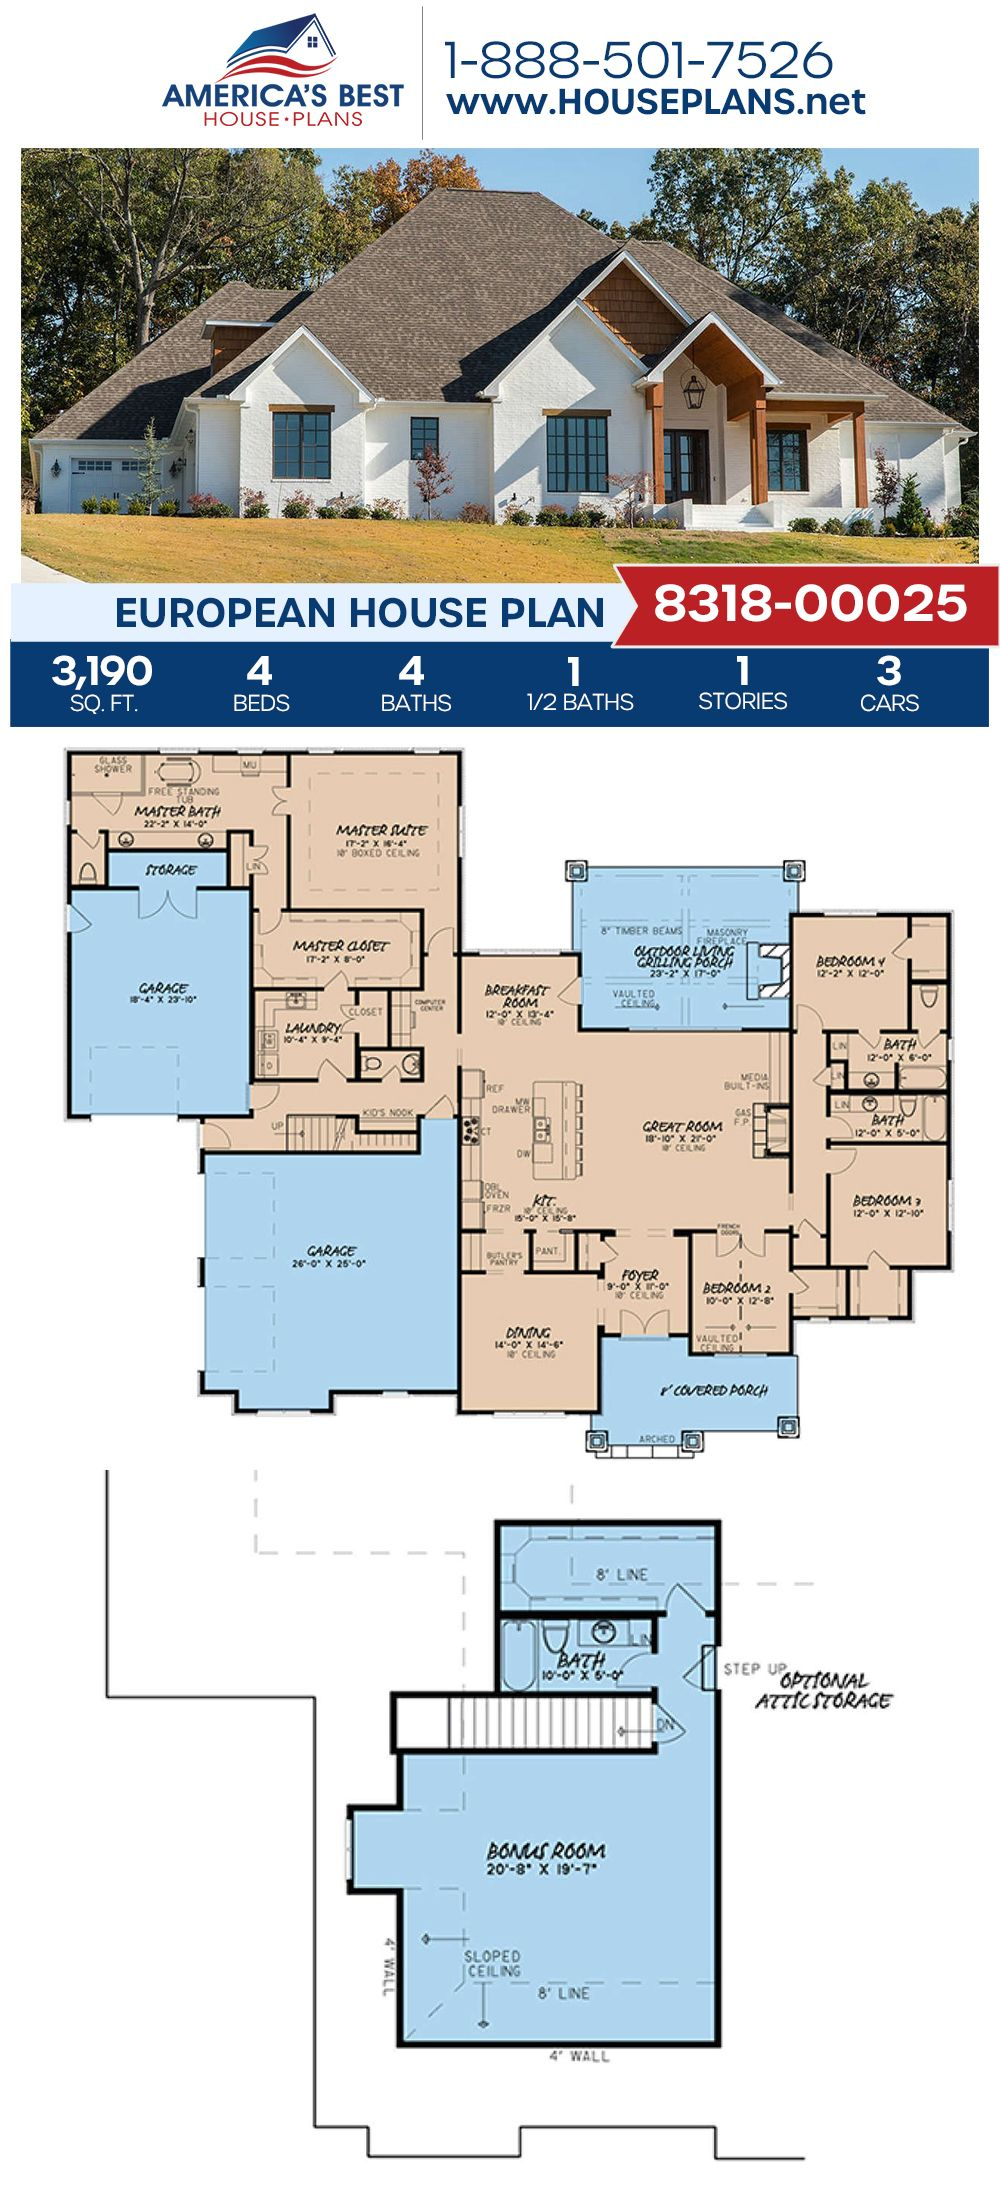 House Plan 8318 00025 European Plan 3 190 Square Feet 4 Bedrooms 4 5 Bathrooms In 2020 Craftsman House Plans House Plans Family House Plans